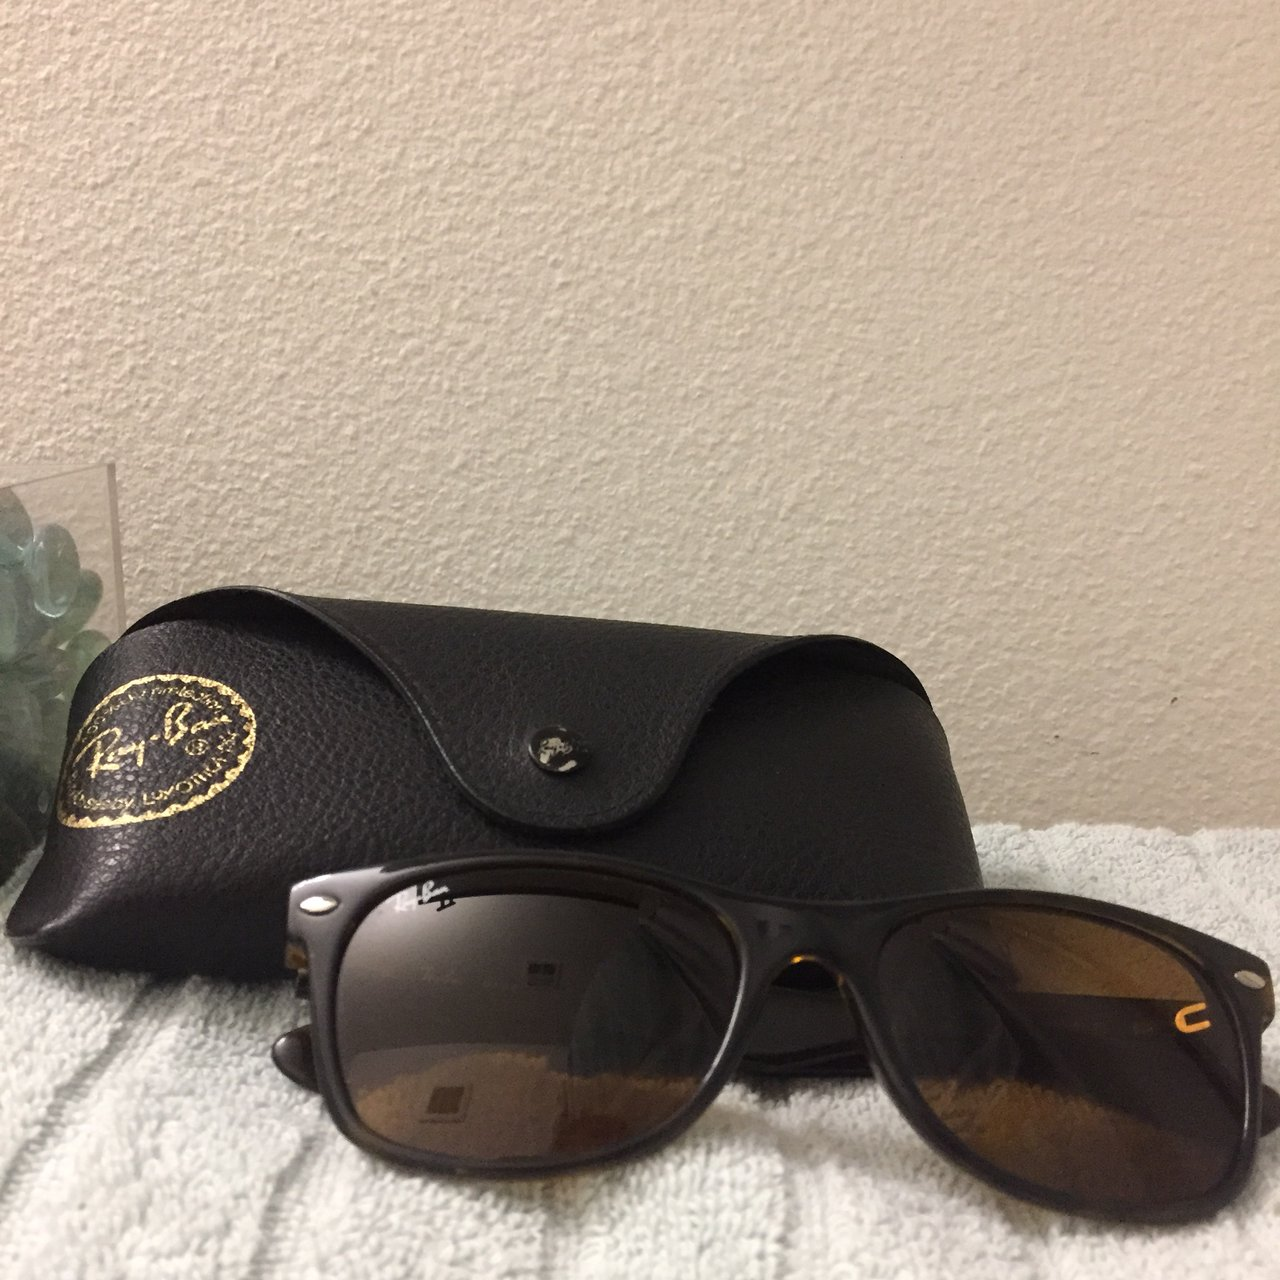 Ray Ban Sunglasses Used But In Good Condition In The Color Depop